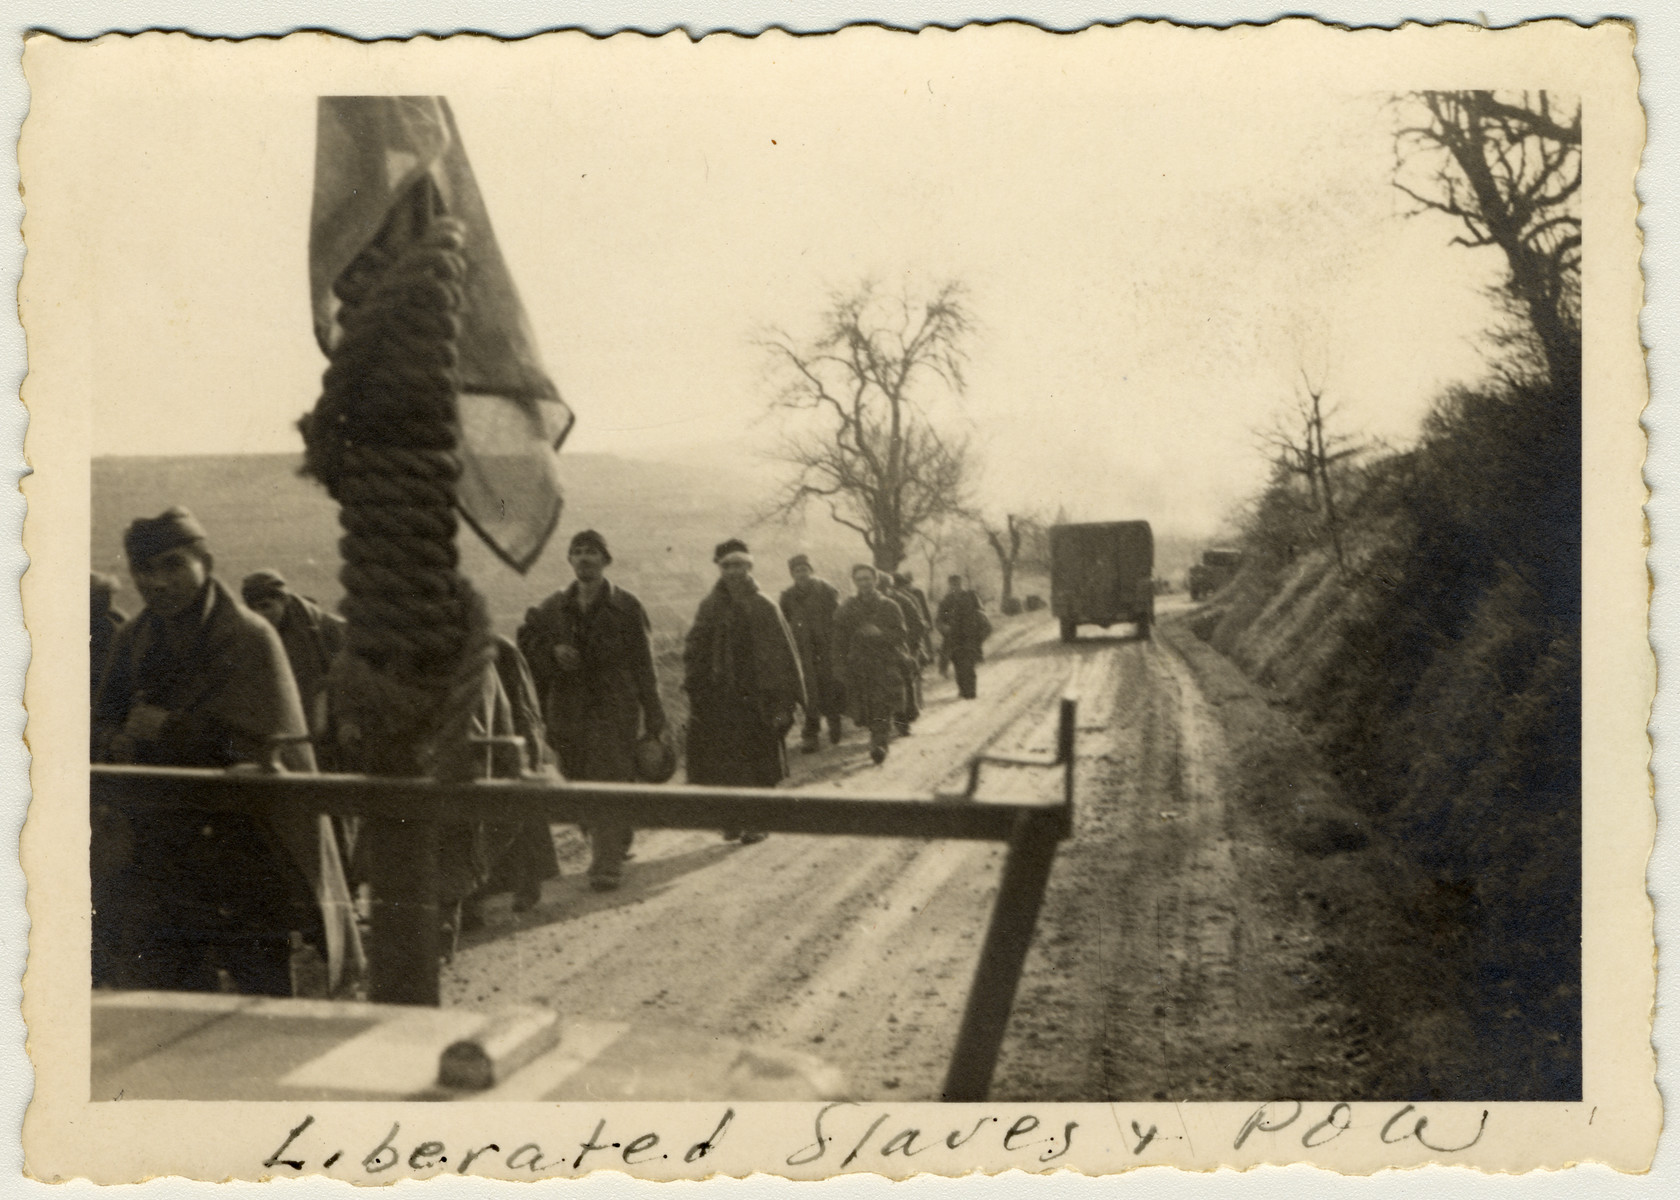 """Camp survivors and freed POWs march down a road after their liberation.  The original caption reads: """"Liberated slaves and POW."""""""